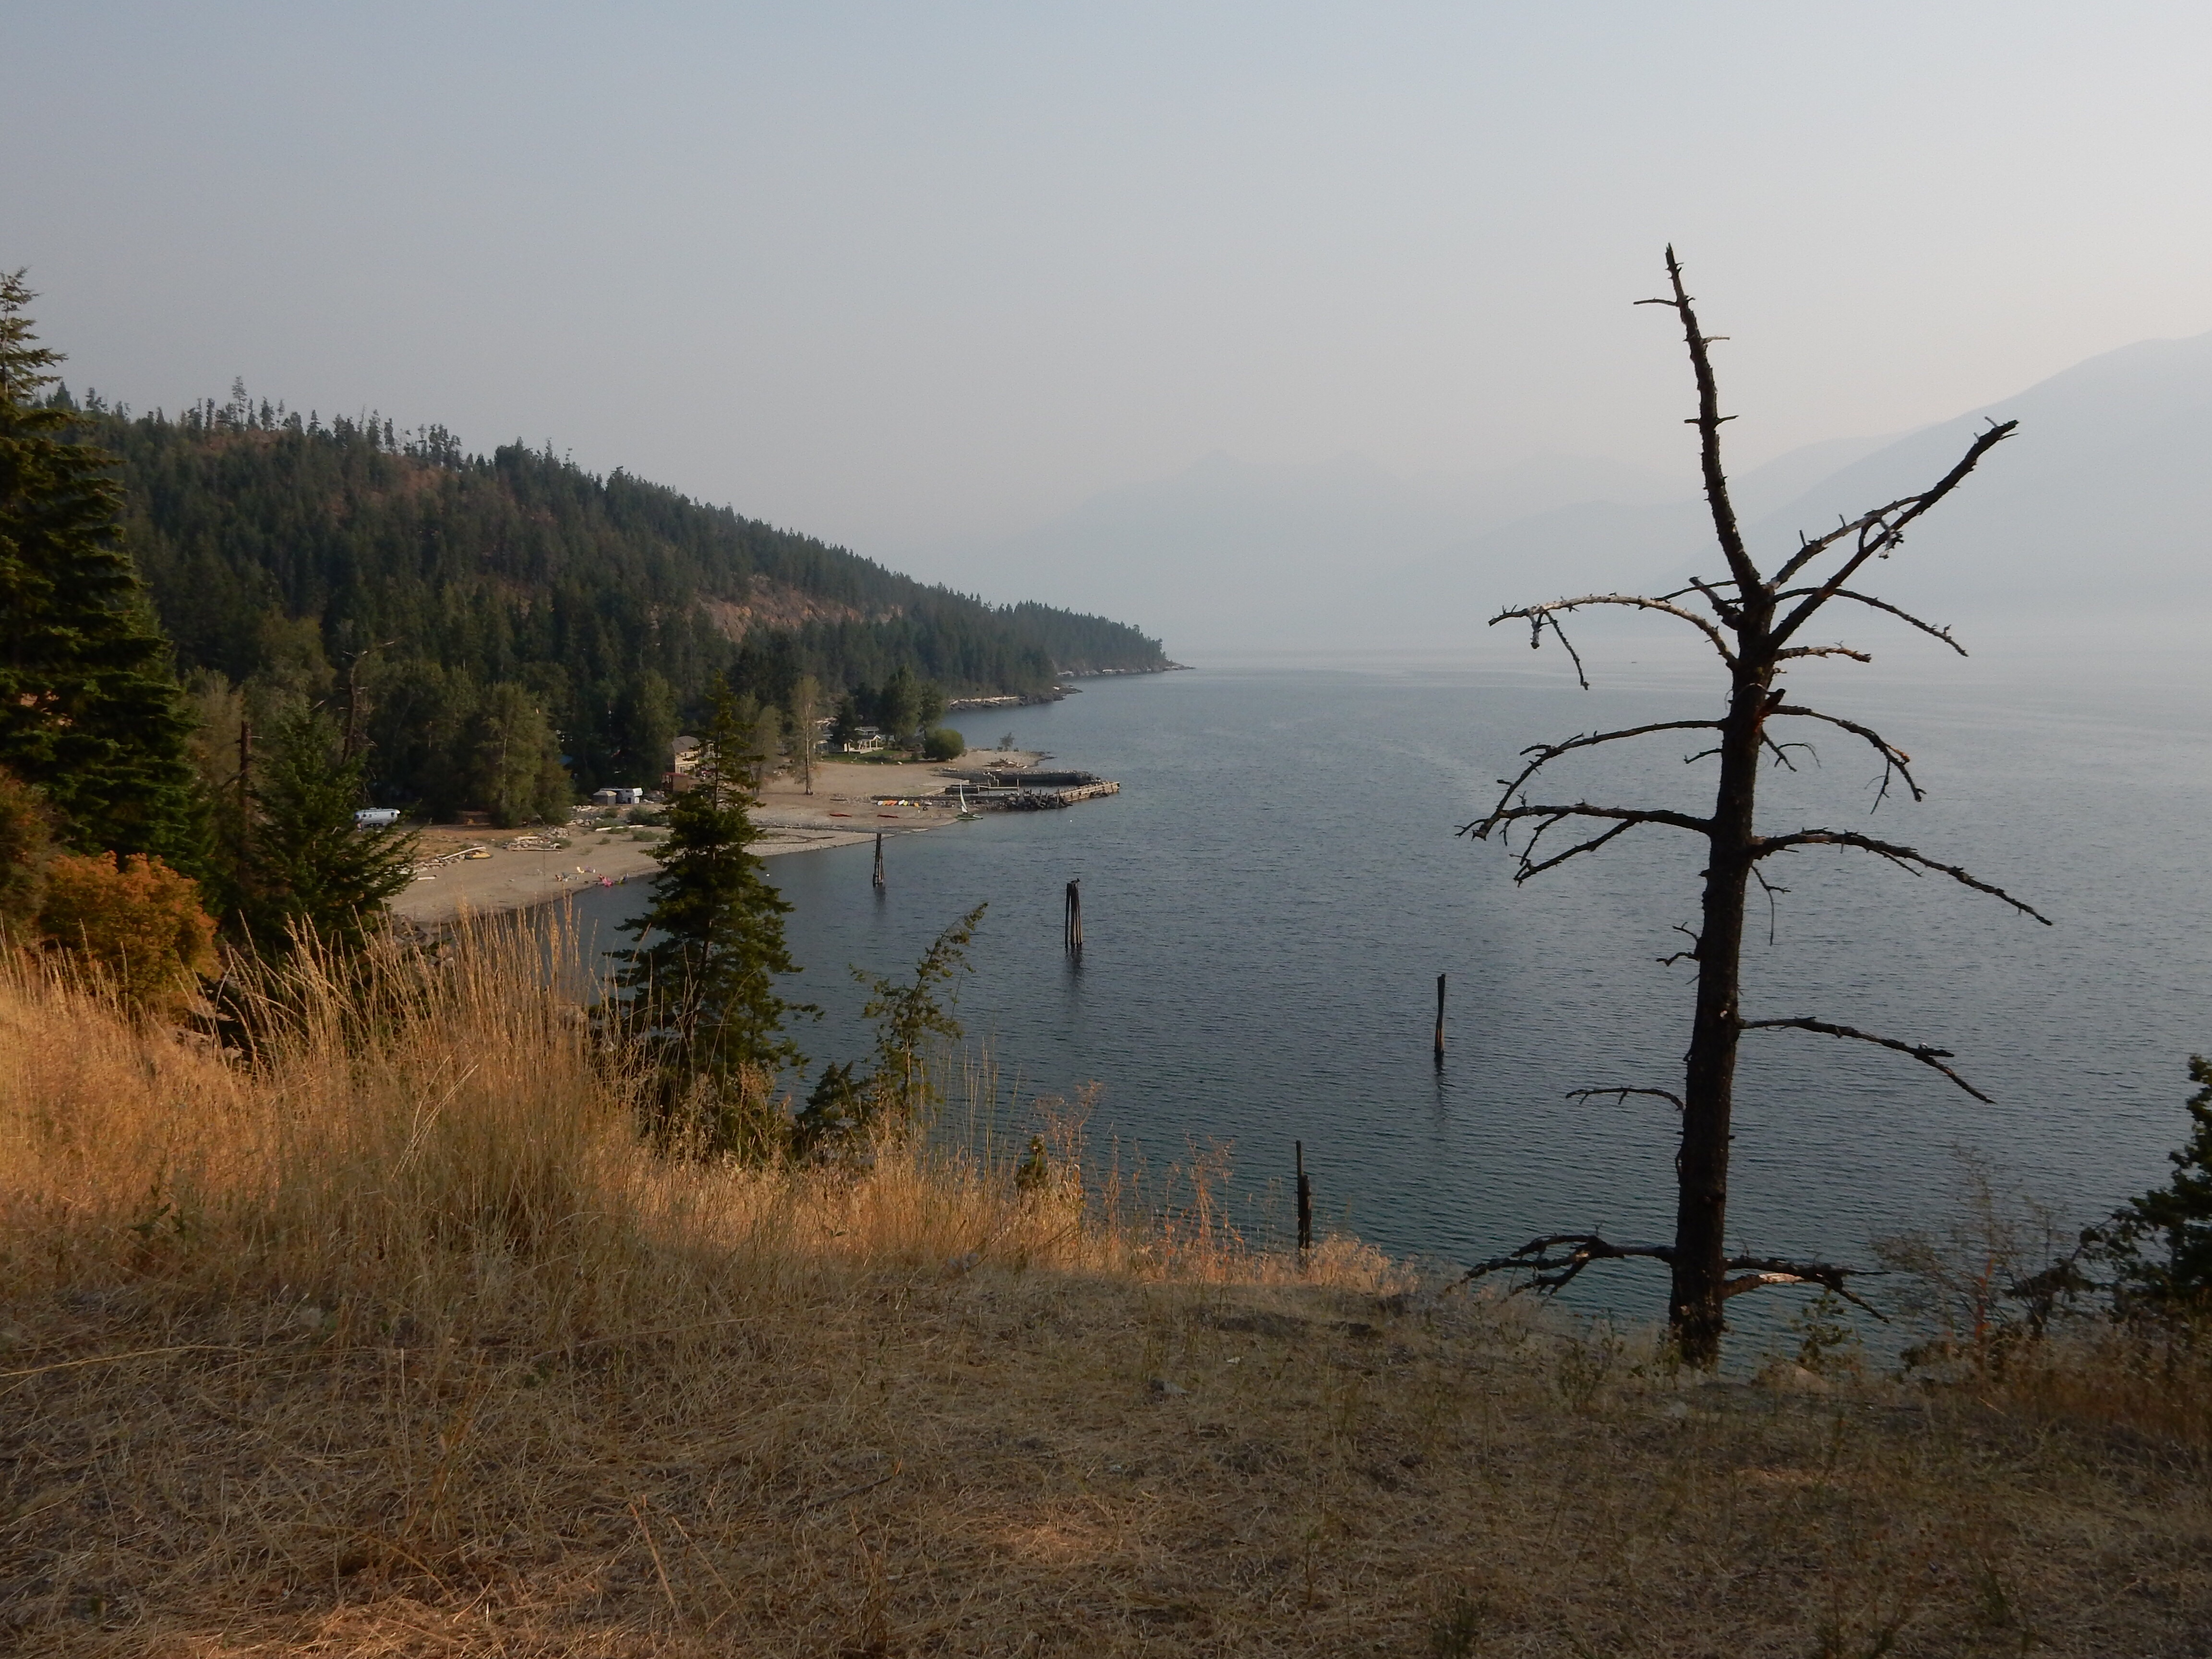 A overlook of Lake Kootenay, looking south, along highway 3A north of Creston.